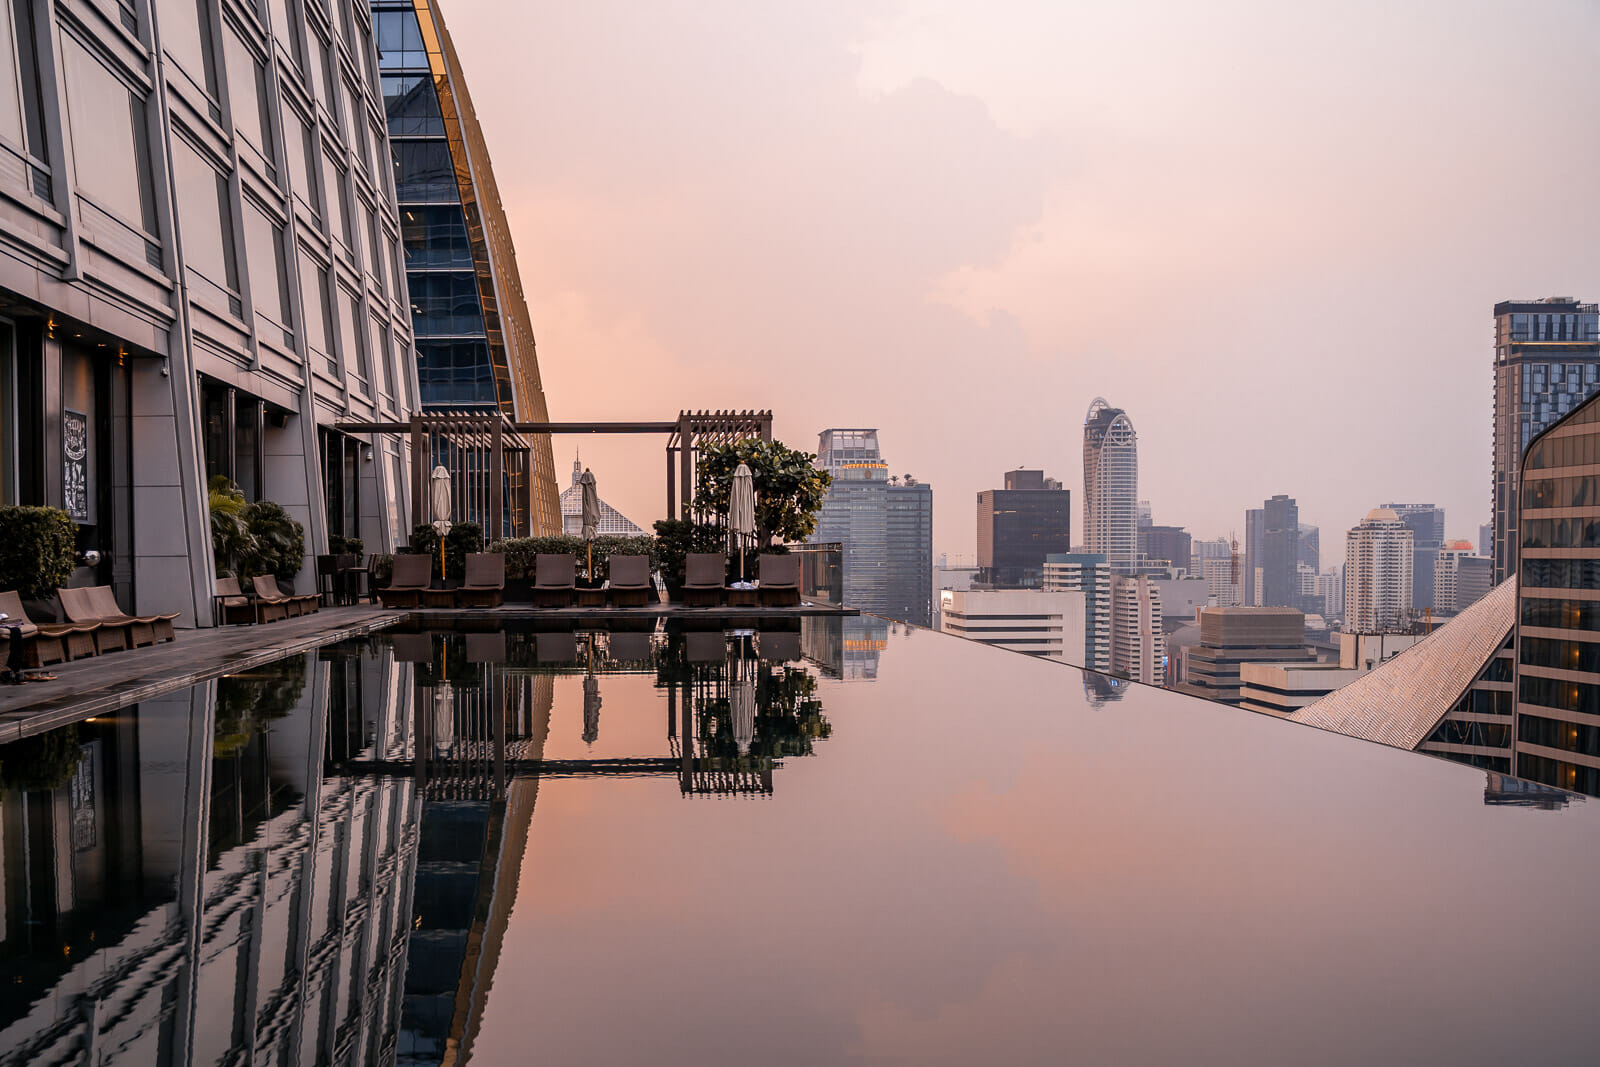 Perfect reflection of the sunset and the Bangkok skyline in the pool at Okura Prestige Bangkok